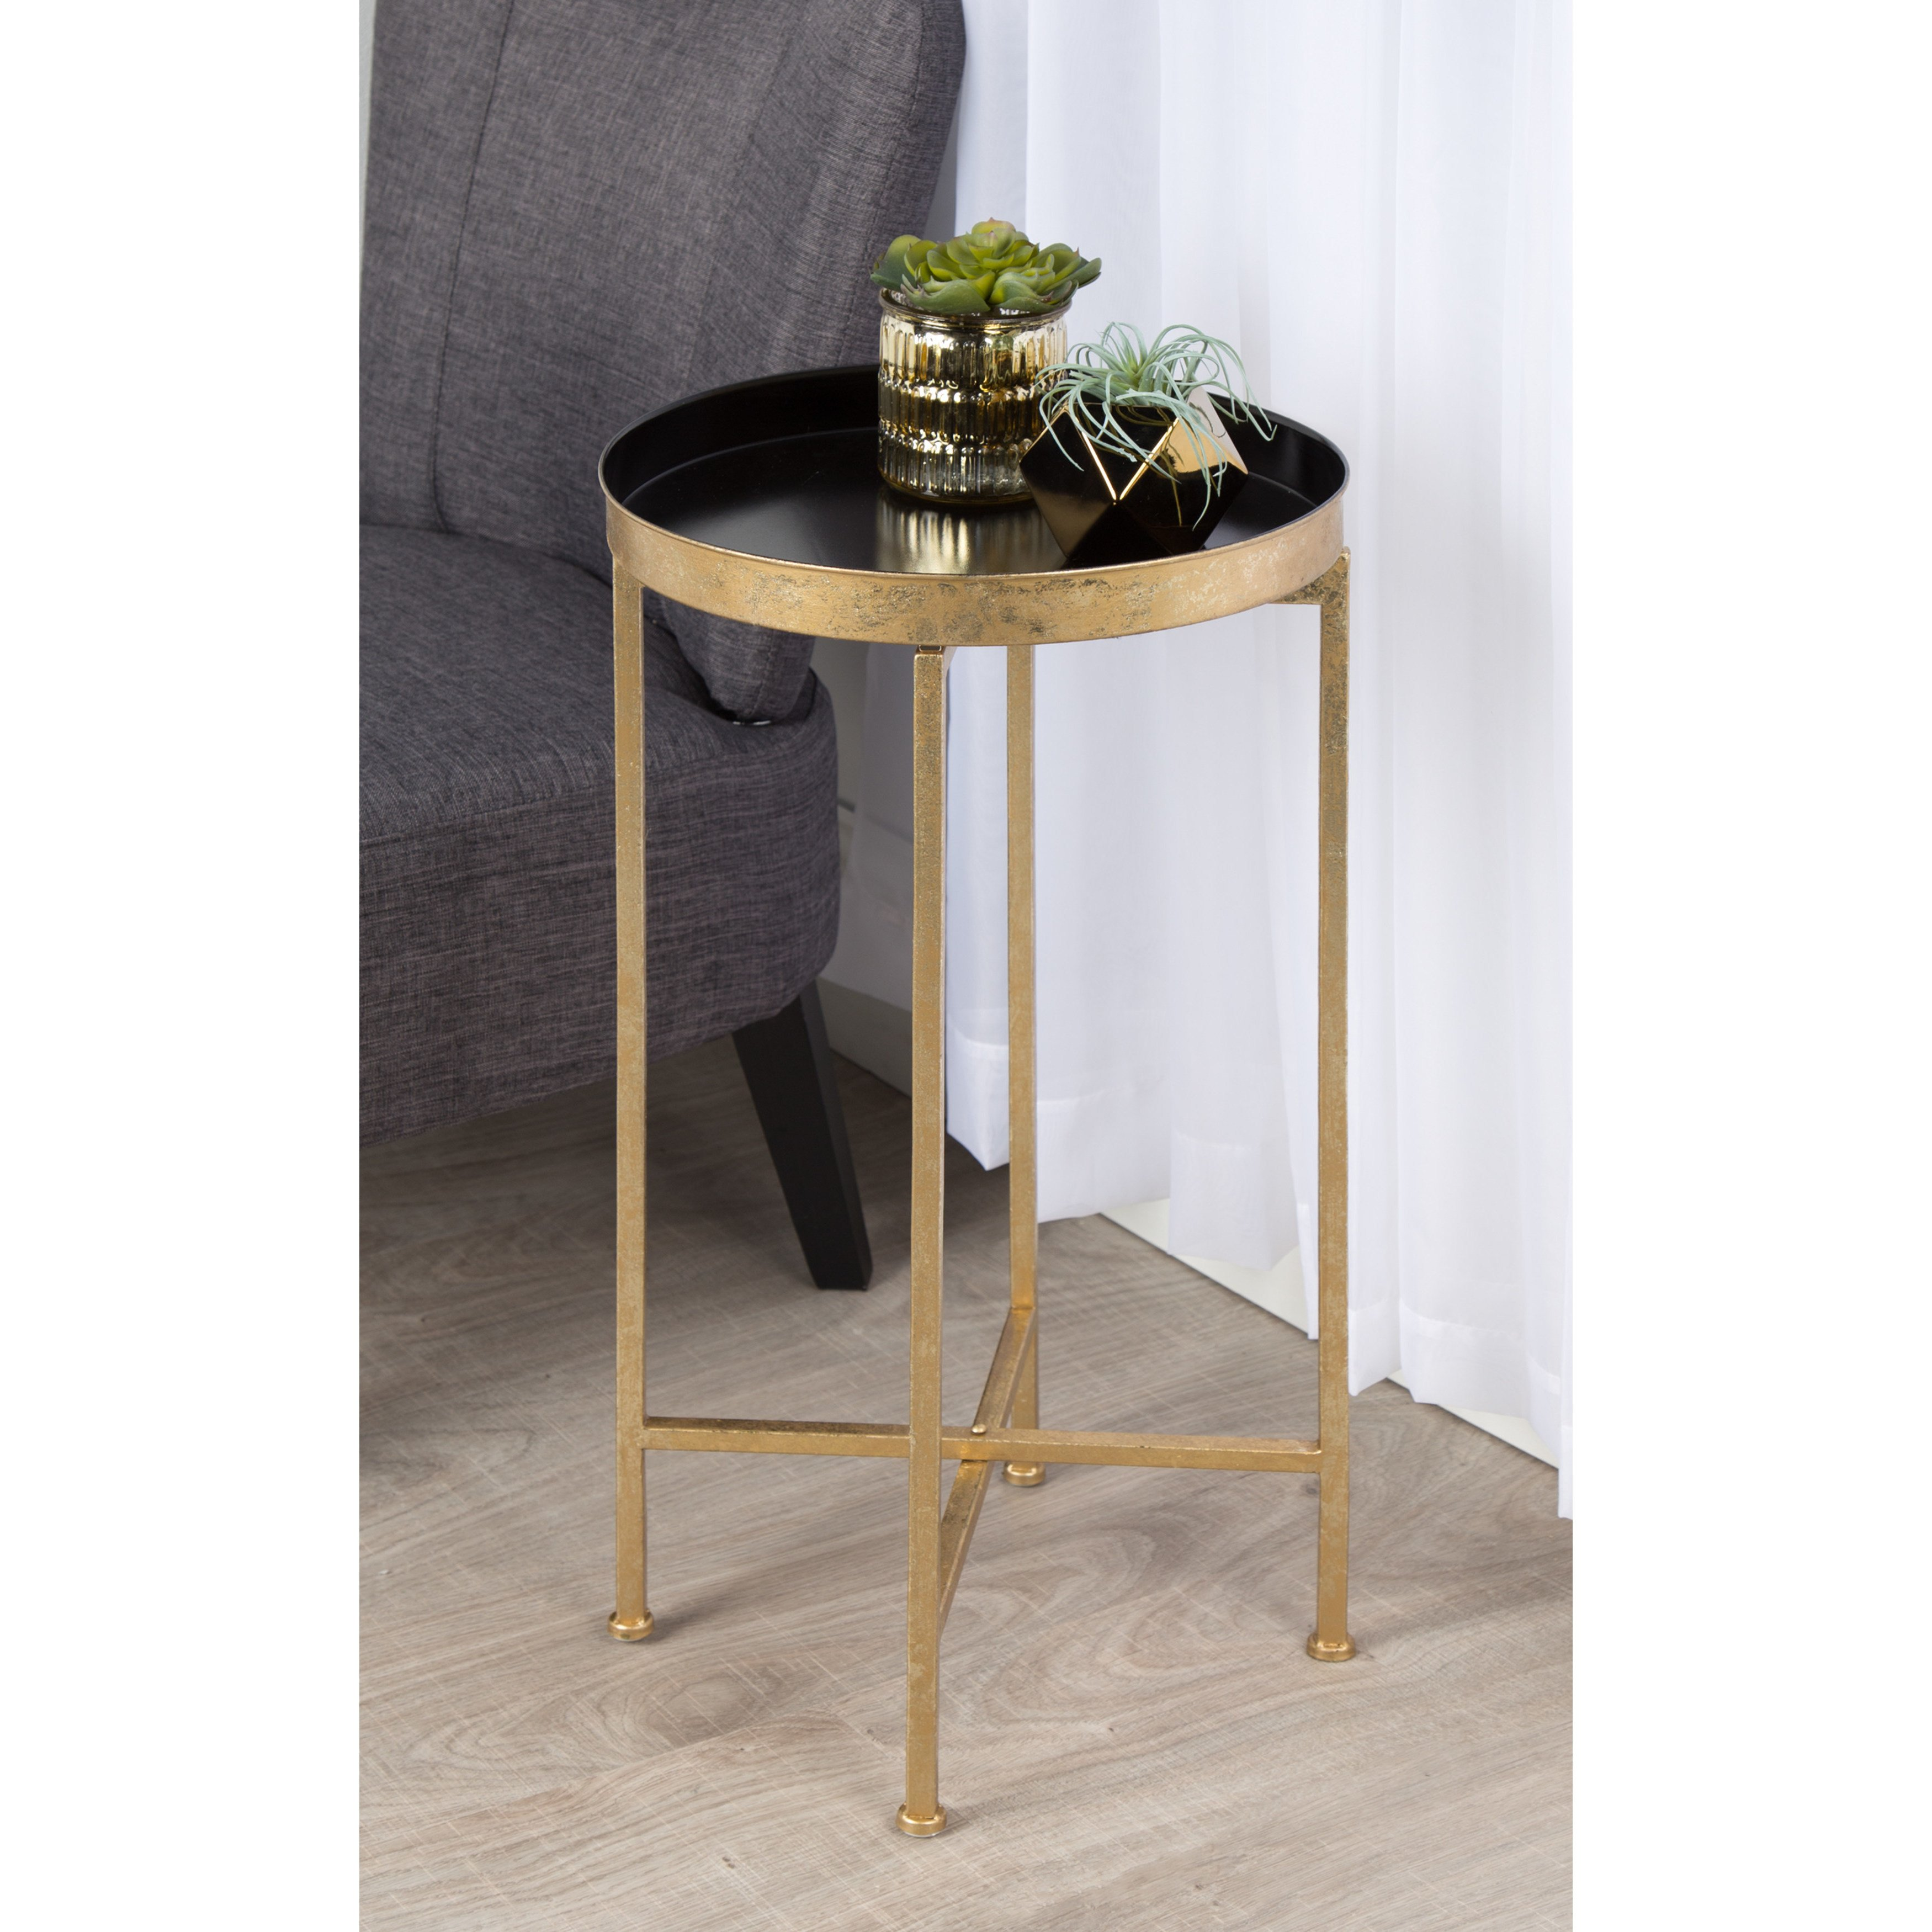 silver orchid legeay round metal foldable tray accent table porch den alamo heights zambrano with printer stand cherry wood end tables drawer ikea occasional top fairy lights